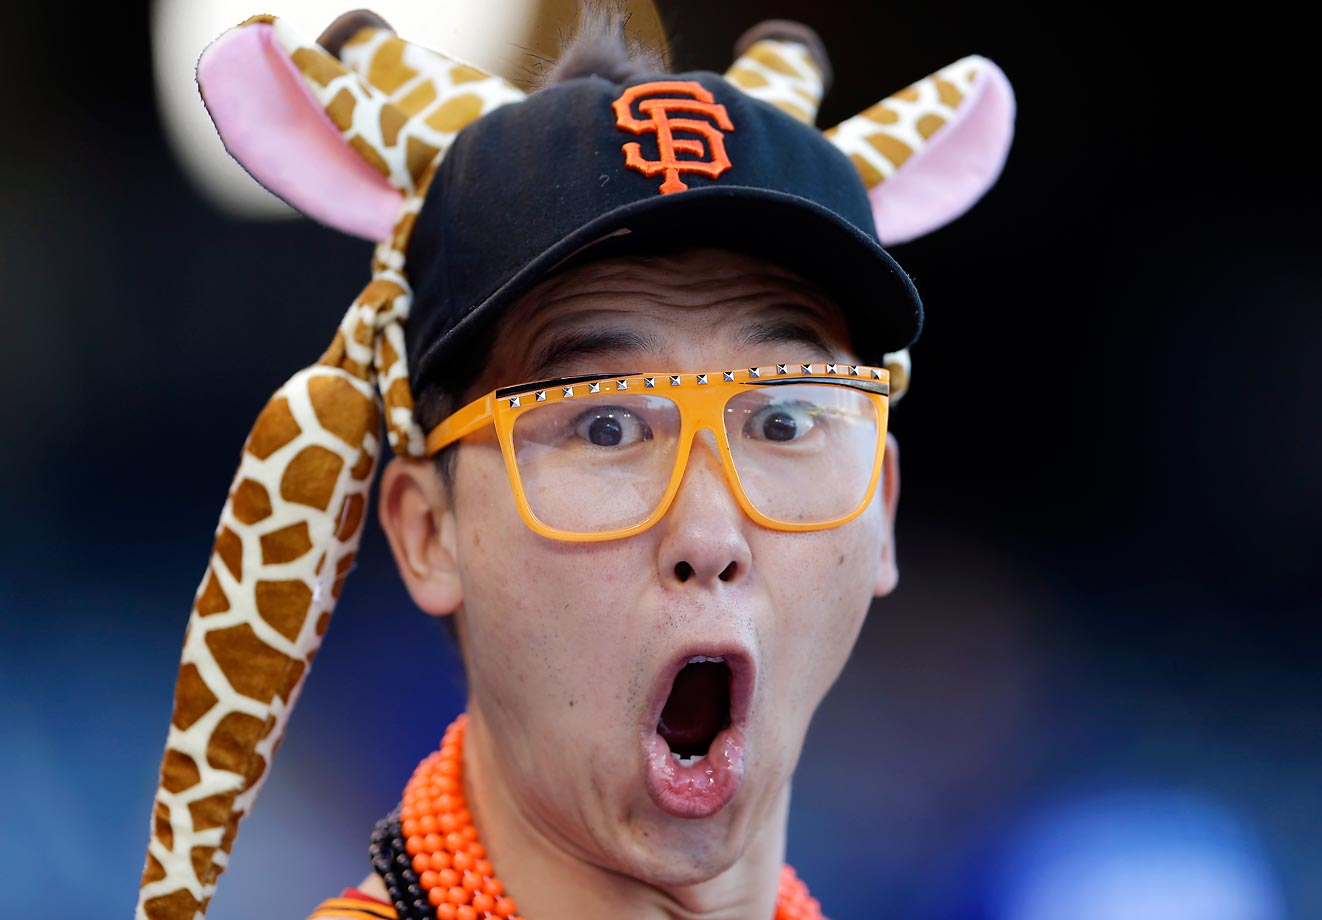 A San Francisco Giants fan during batting practice before Game 7 of the World Series.